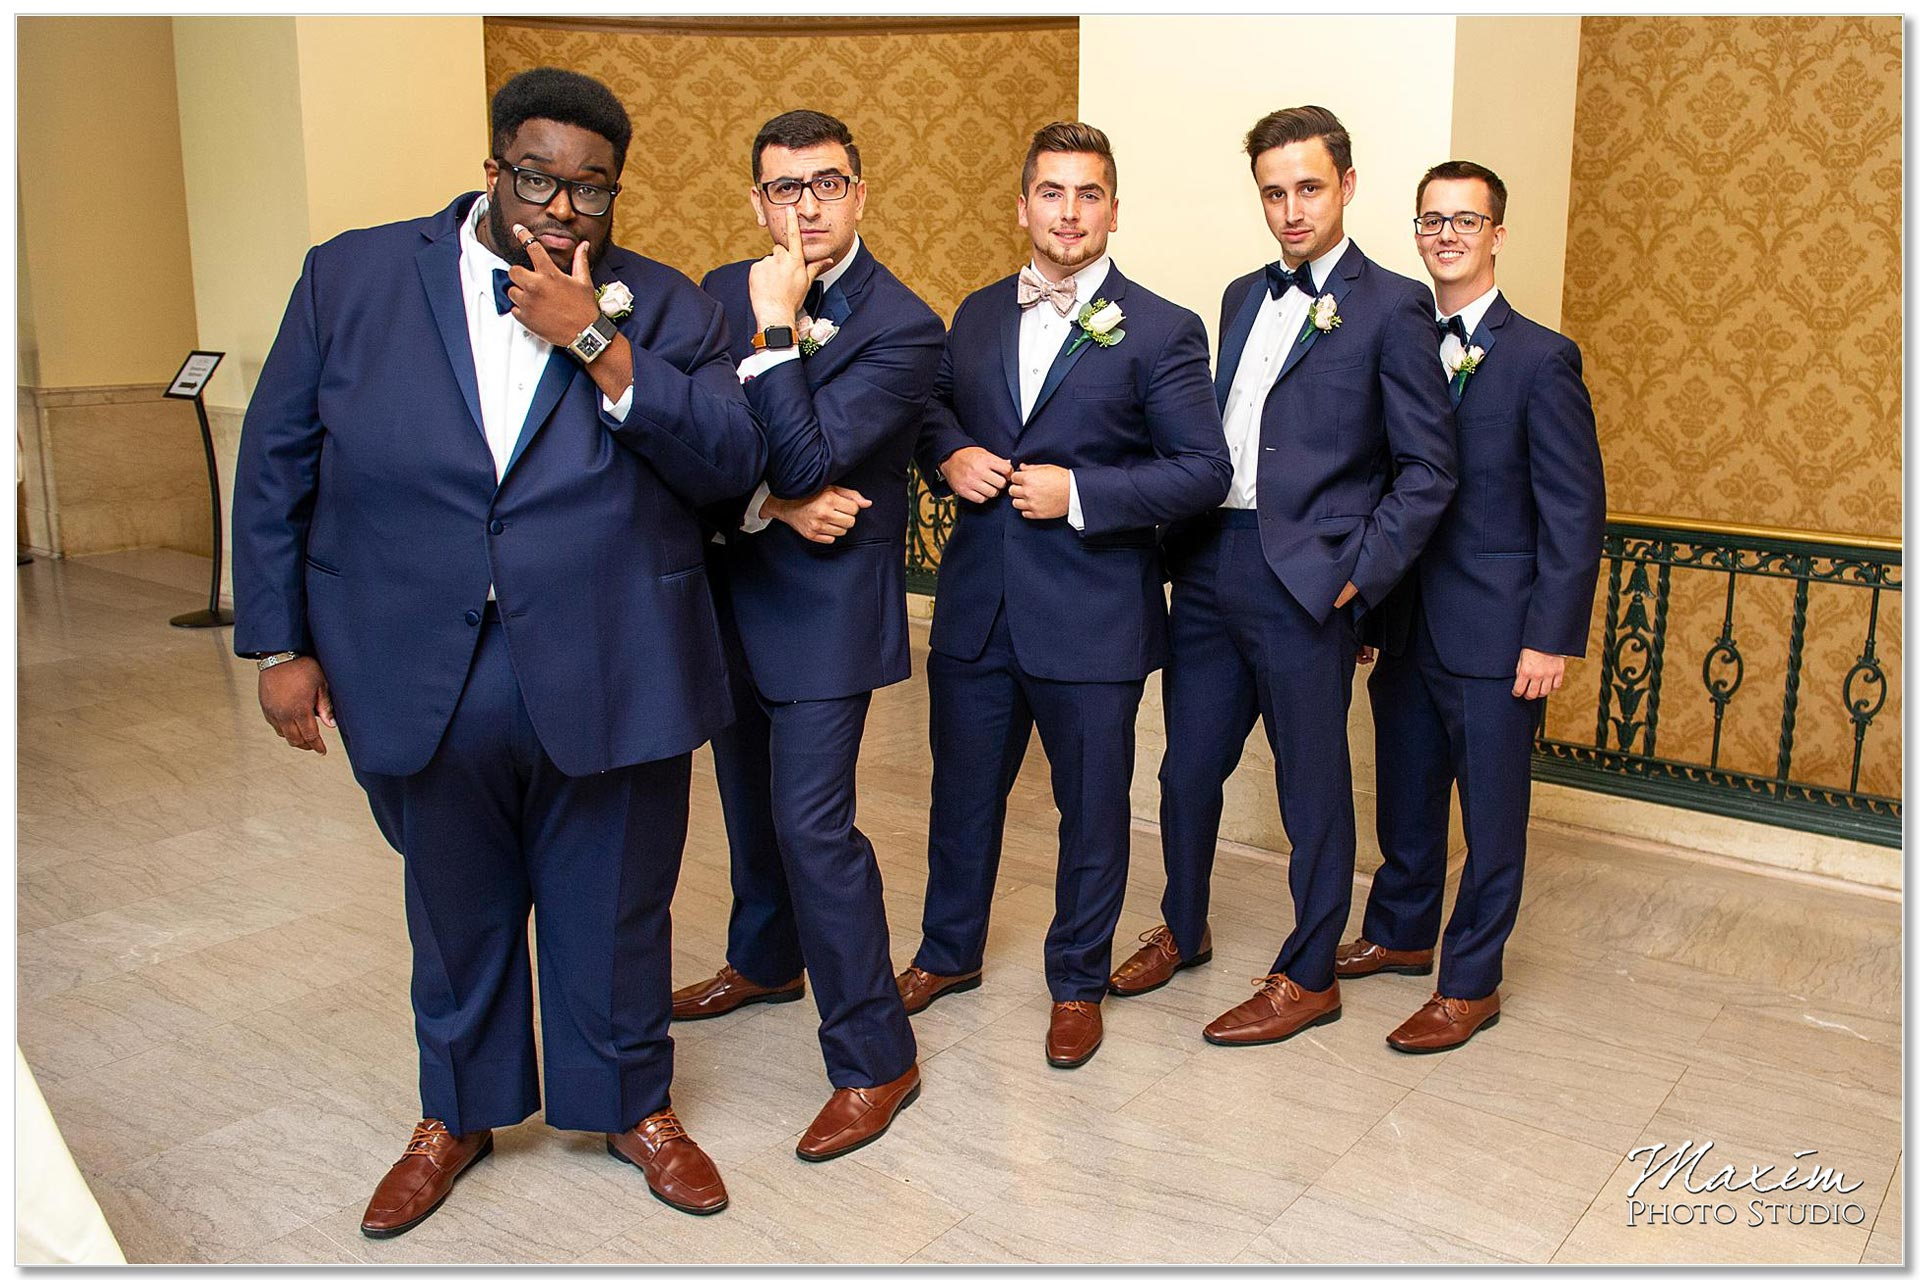 Groom groomsmen wedding ceremony